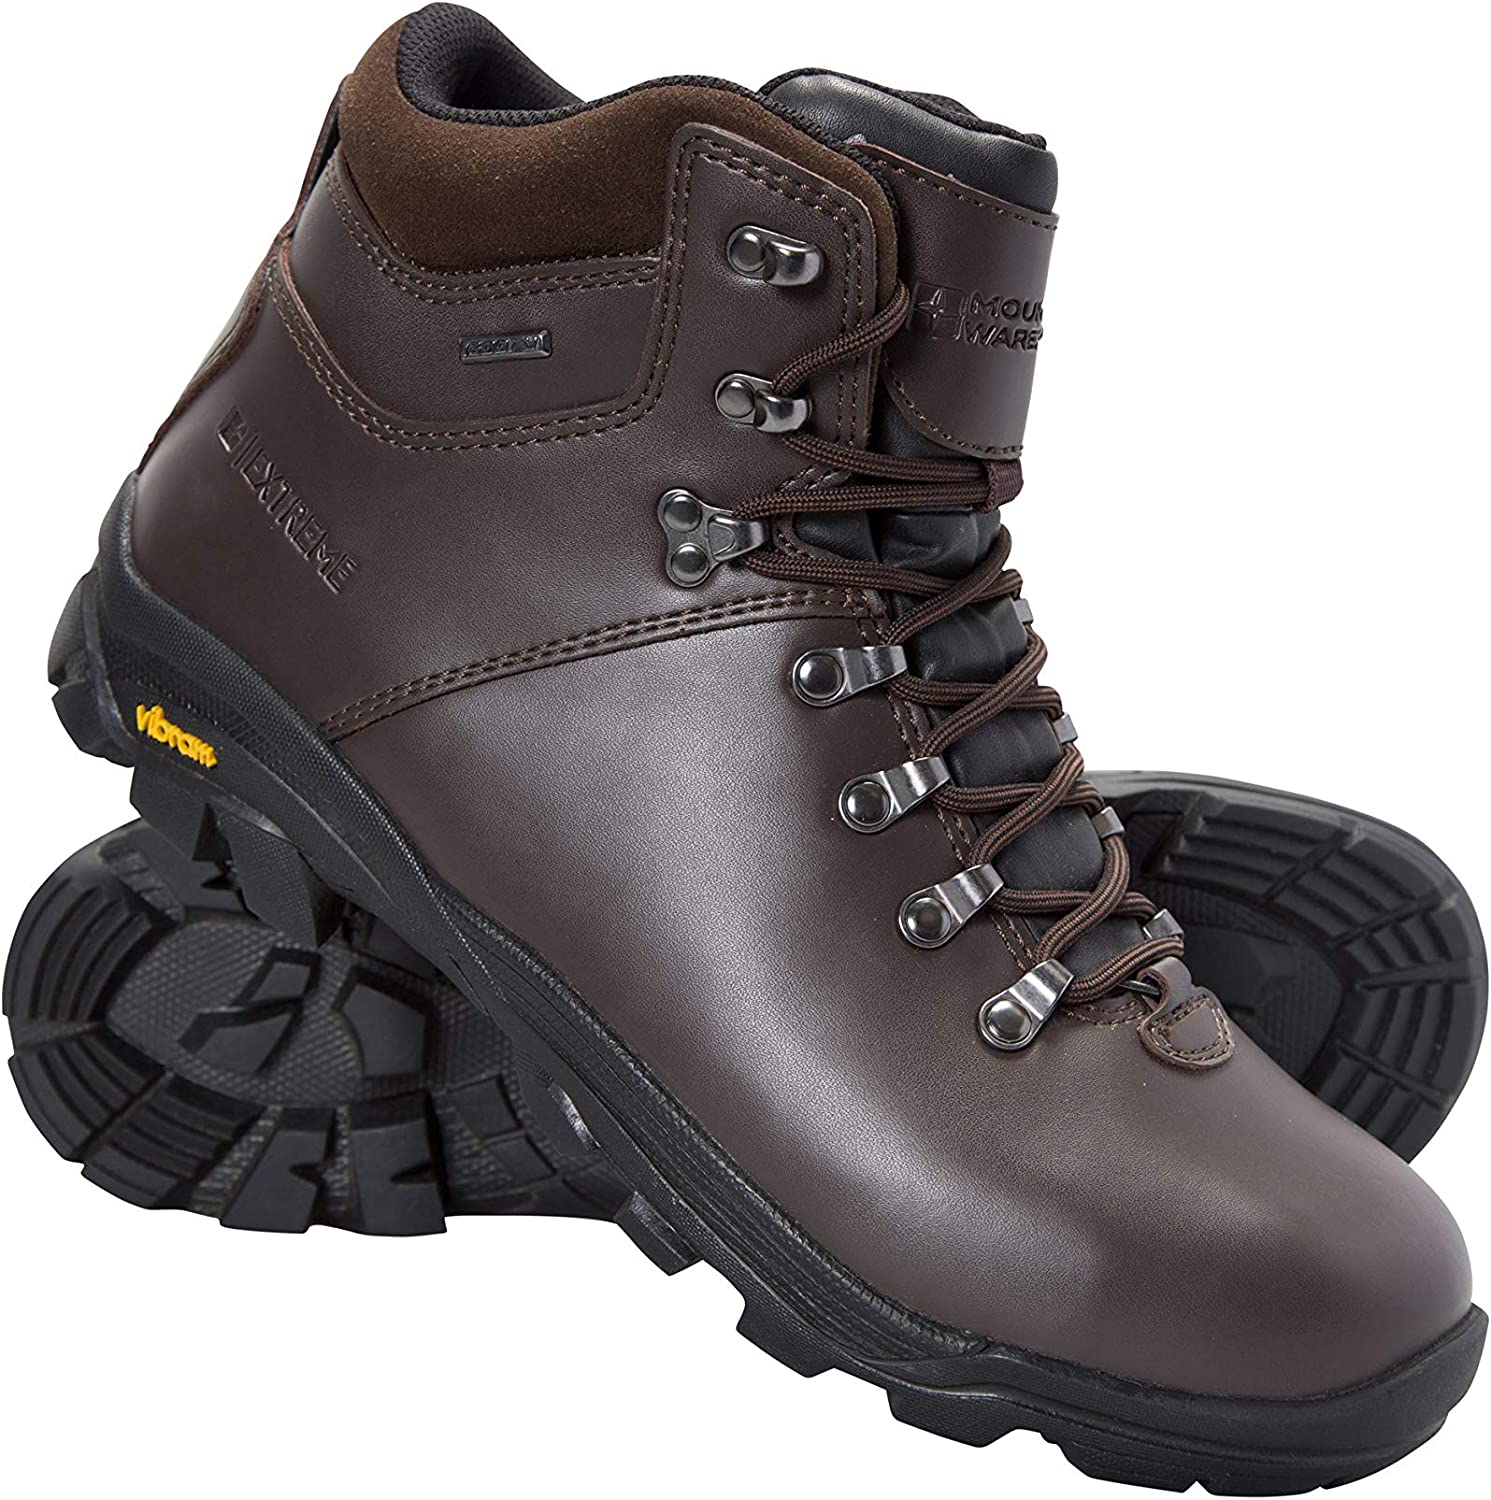 Mountain Warehouse Brecon Mens Waterproof Vibram Hiking Boots